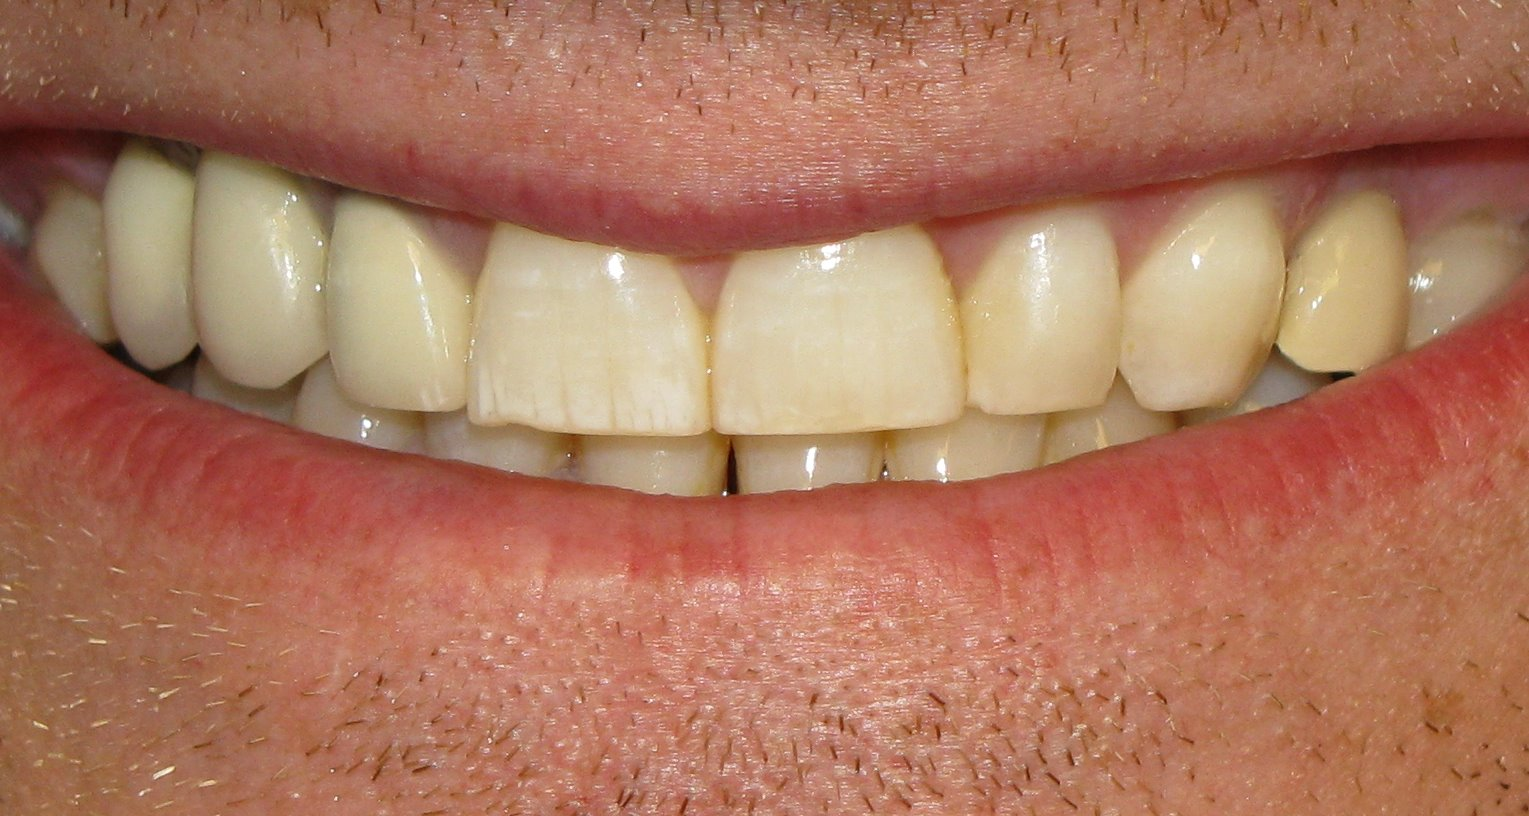 Dental Flourosis on front right tooth